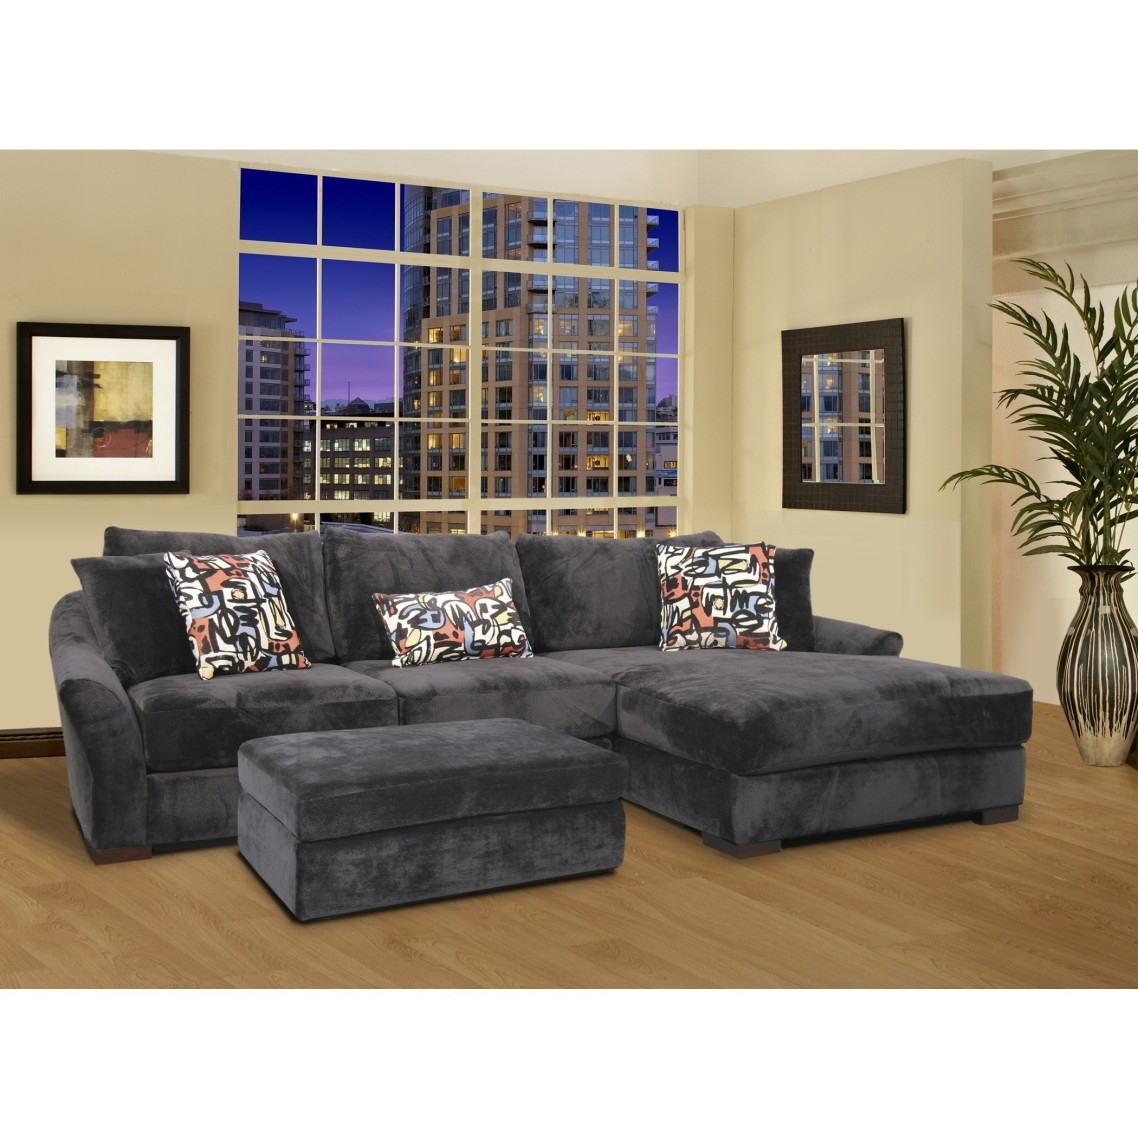 Gray Velvet Oversized Sectional Sleeper Sofa With Left Chaise Pertaining To Coffee Table For Sectional Sofa With Chaise (Image 11 of 15)